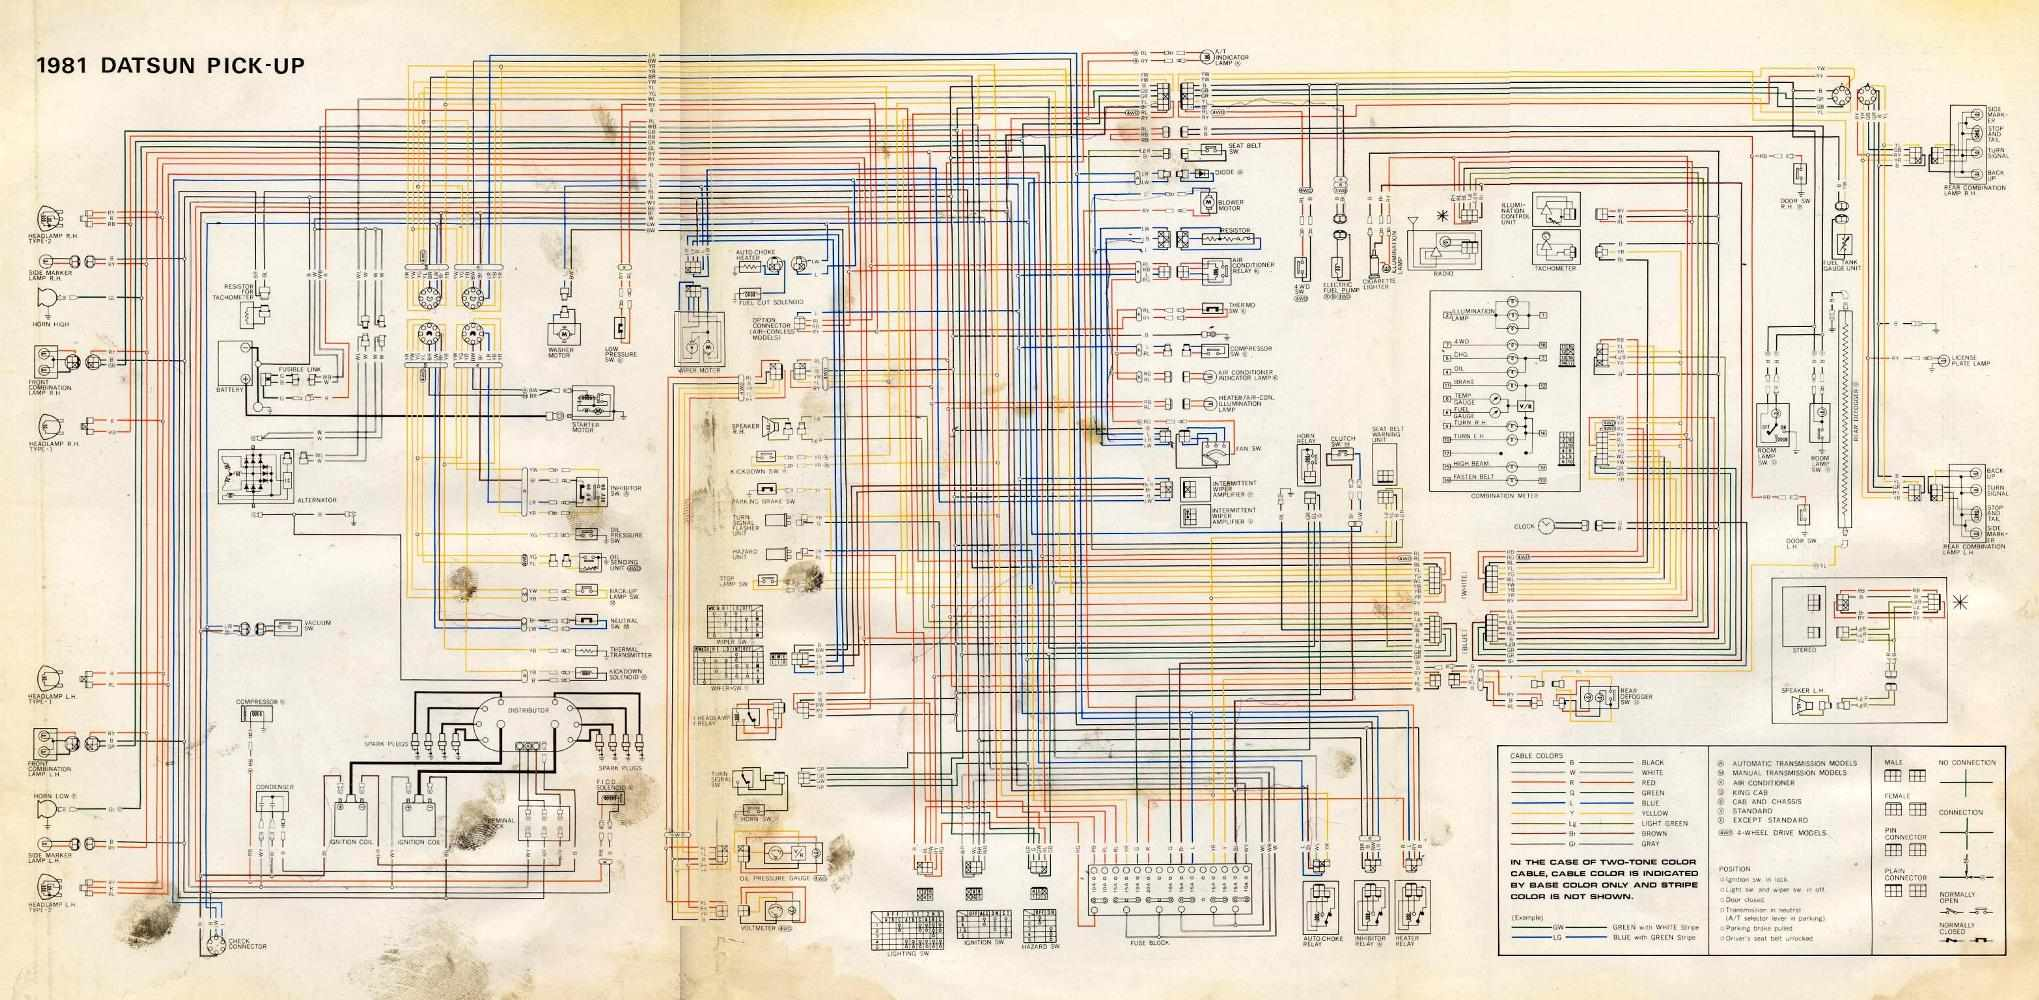 1987 S10 Wiper Motor Wiring Diagram Library Gmc S15 1978 C10 For Electrical Diagrams 1986 Chevy Truck Chevrolet